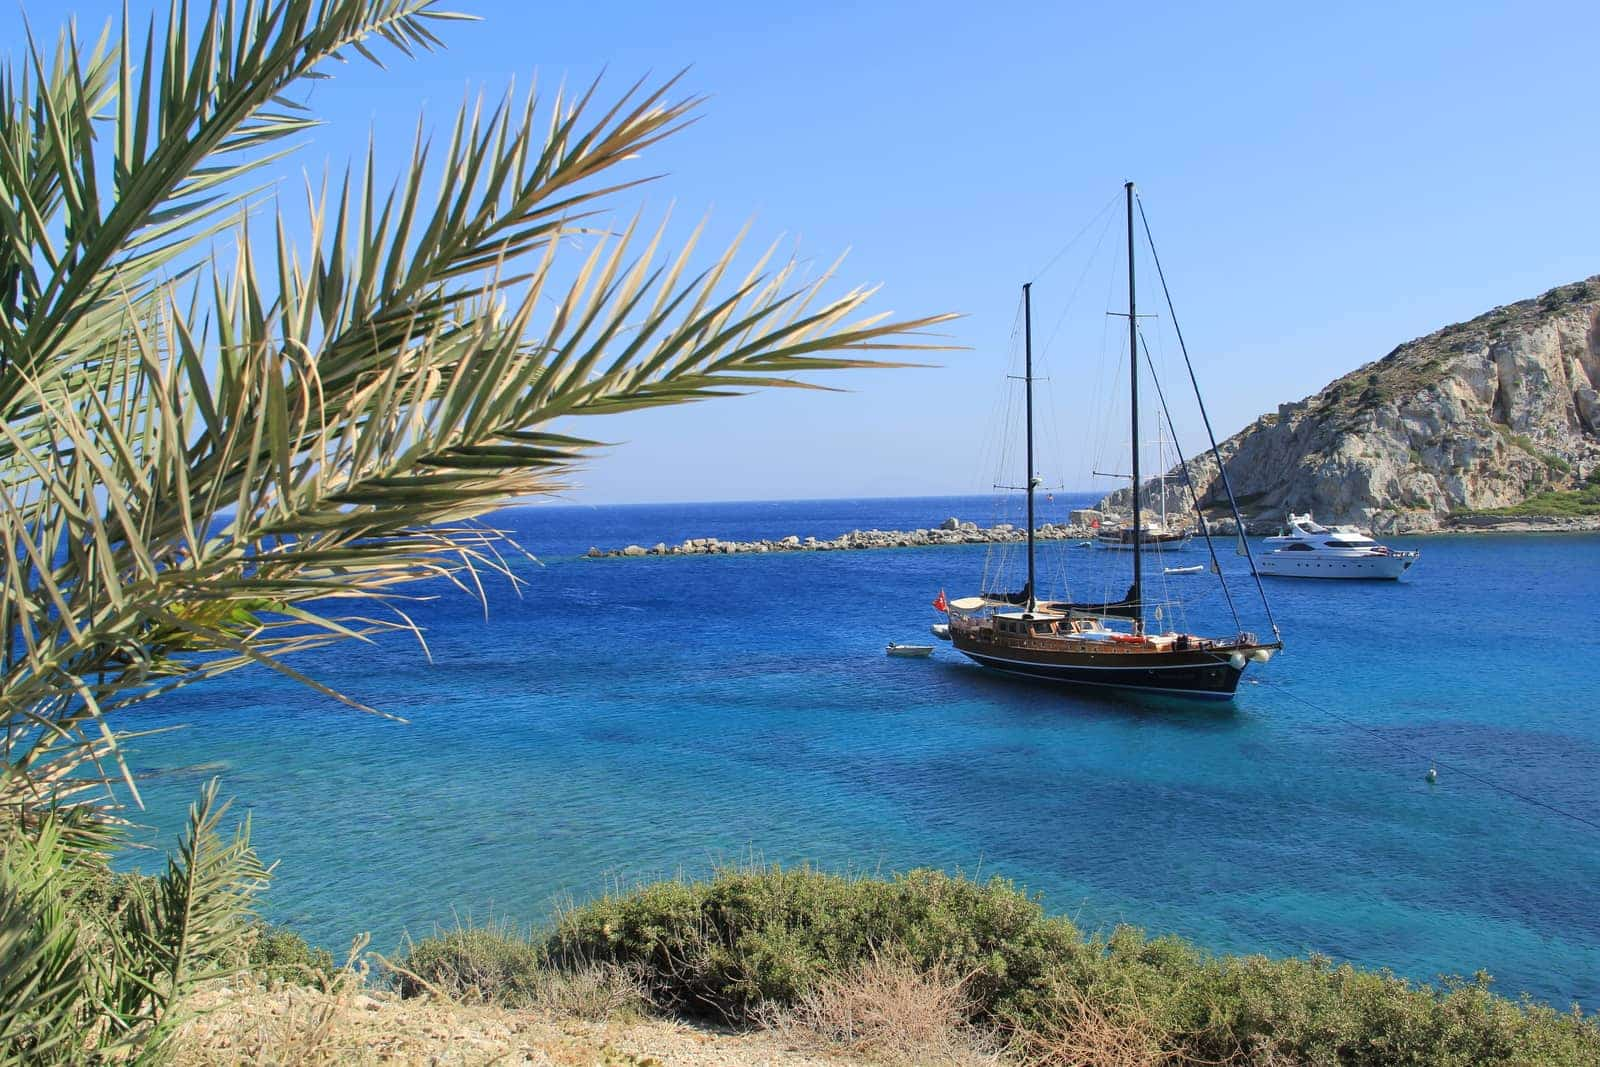 Blue Escape 5-Day Sailing Tour from Gocek to Fethiye 4